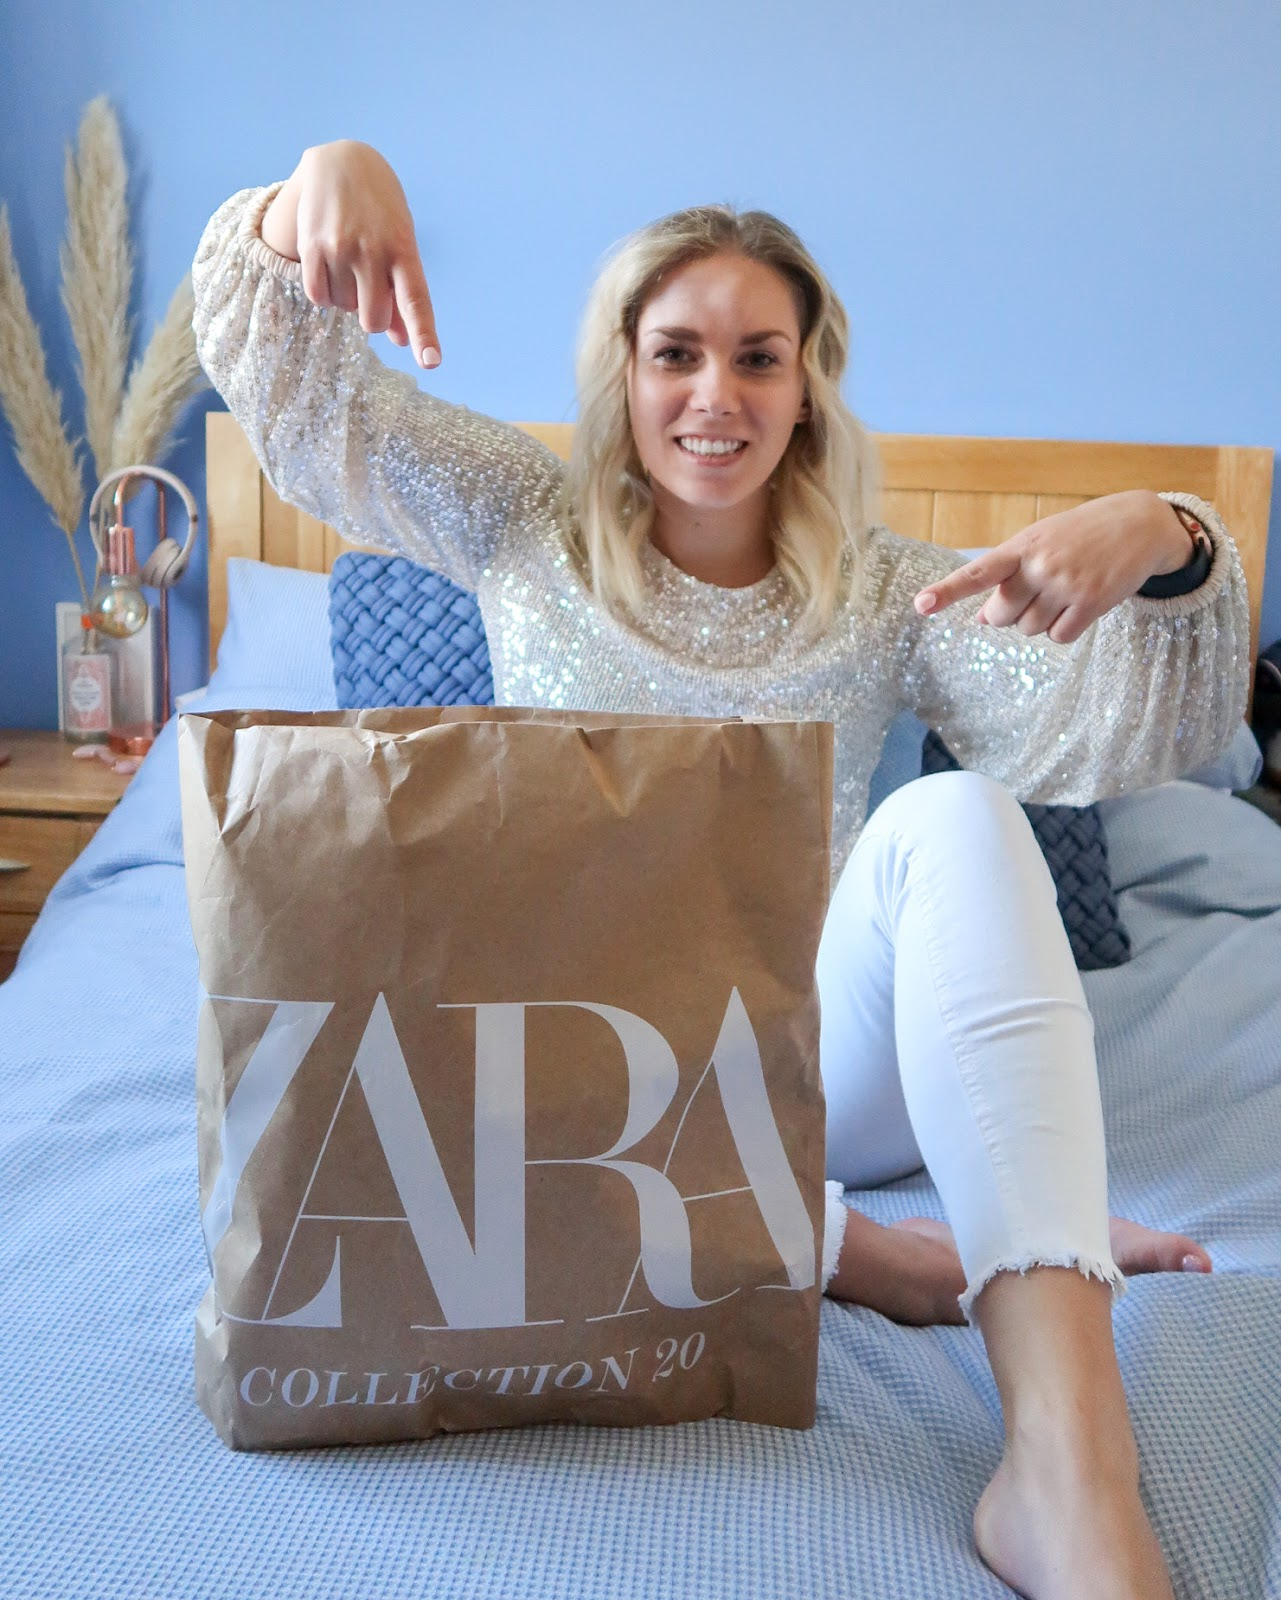 Rachel Emily in a sequin top with a large Zara online delivery parcel